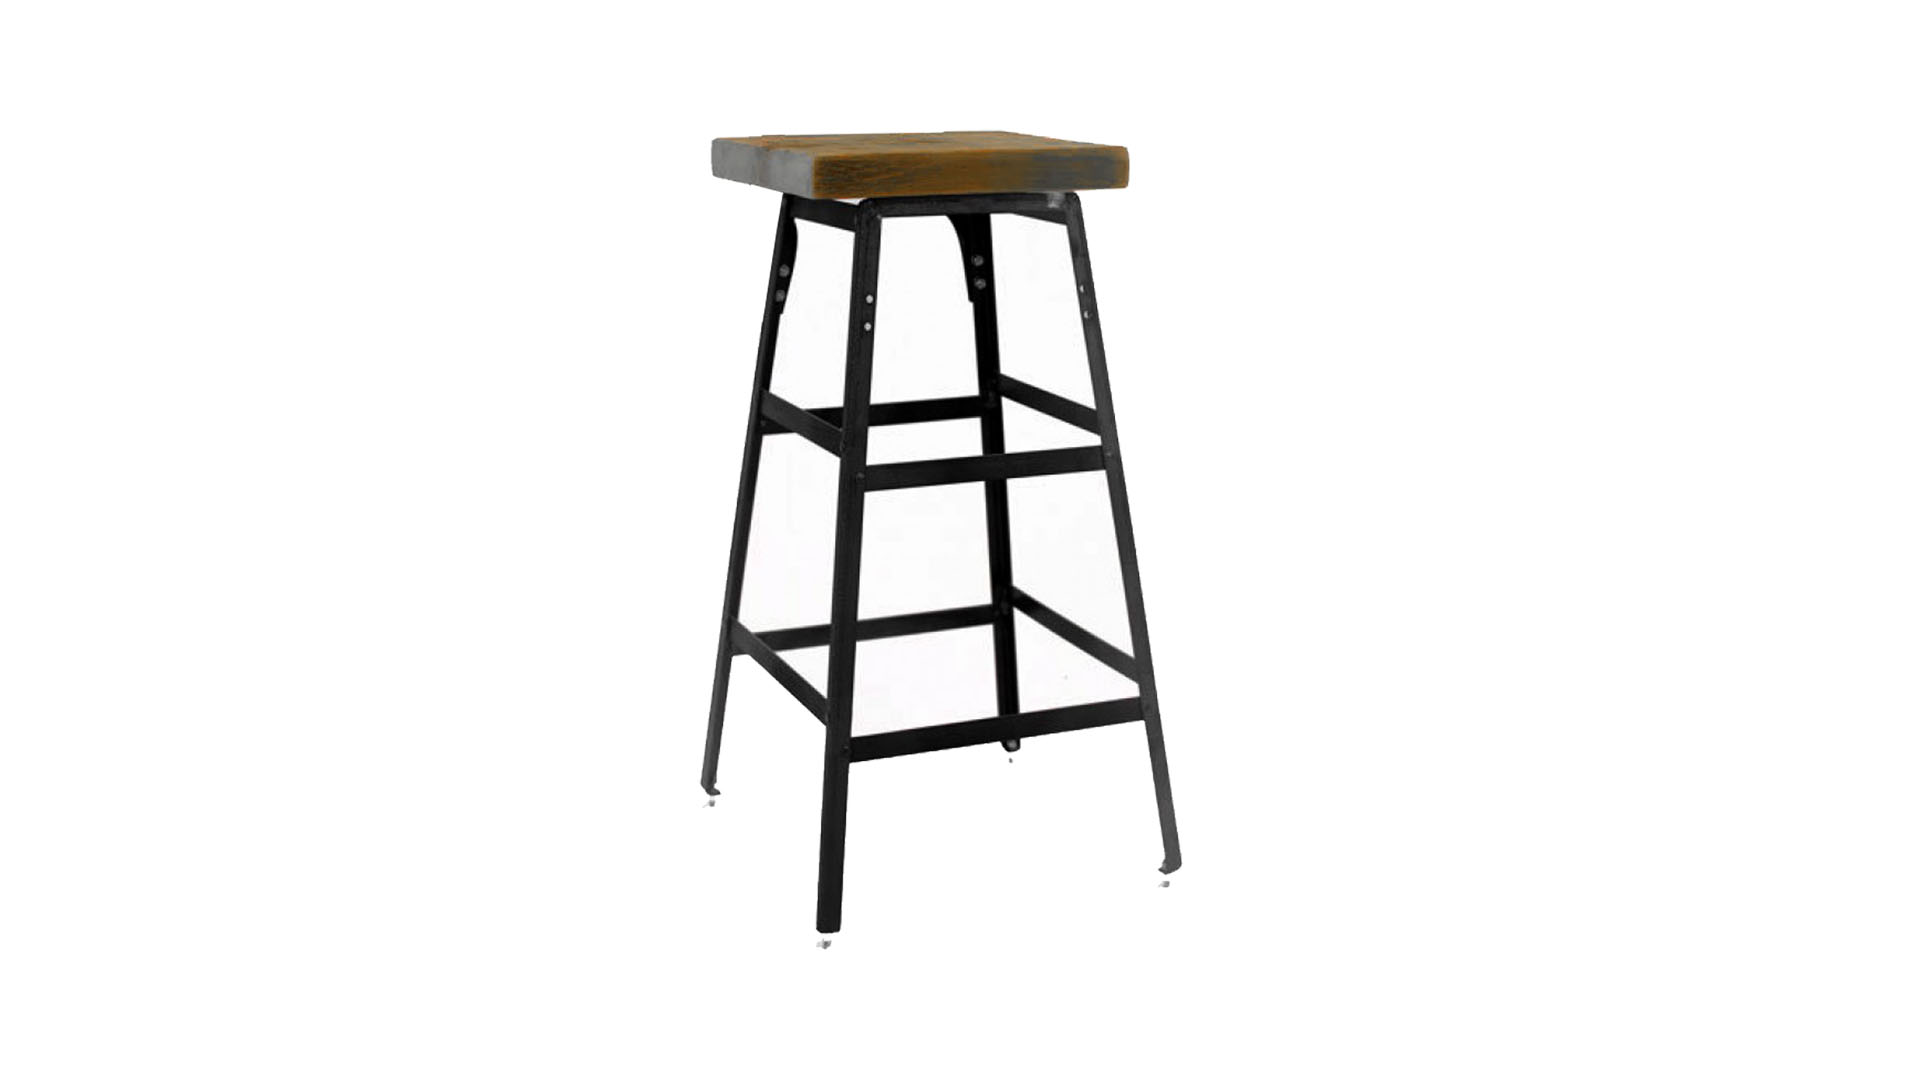 Vintage Industrial Bar Stool Backless